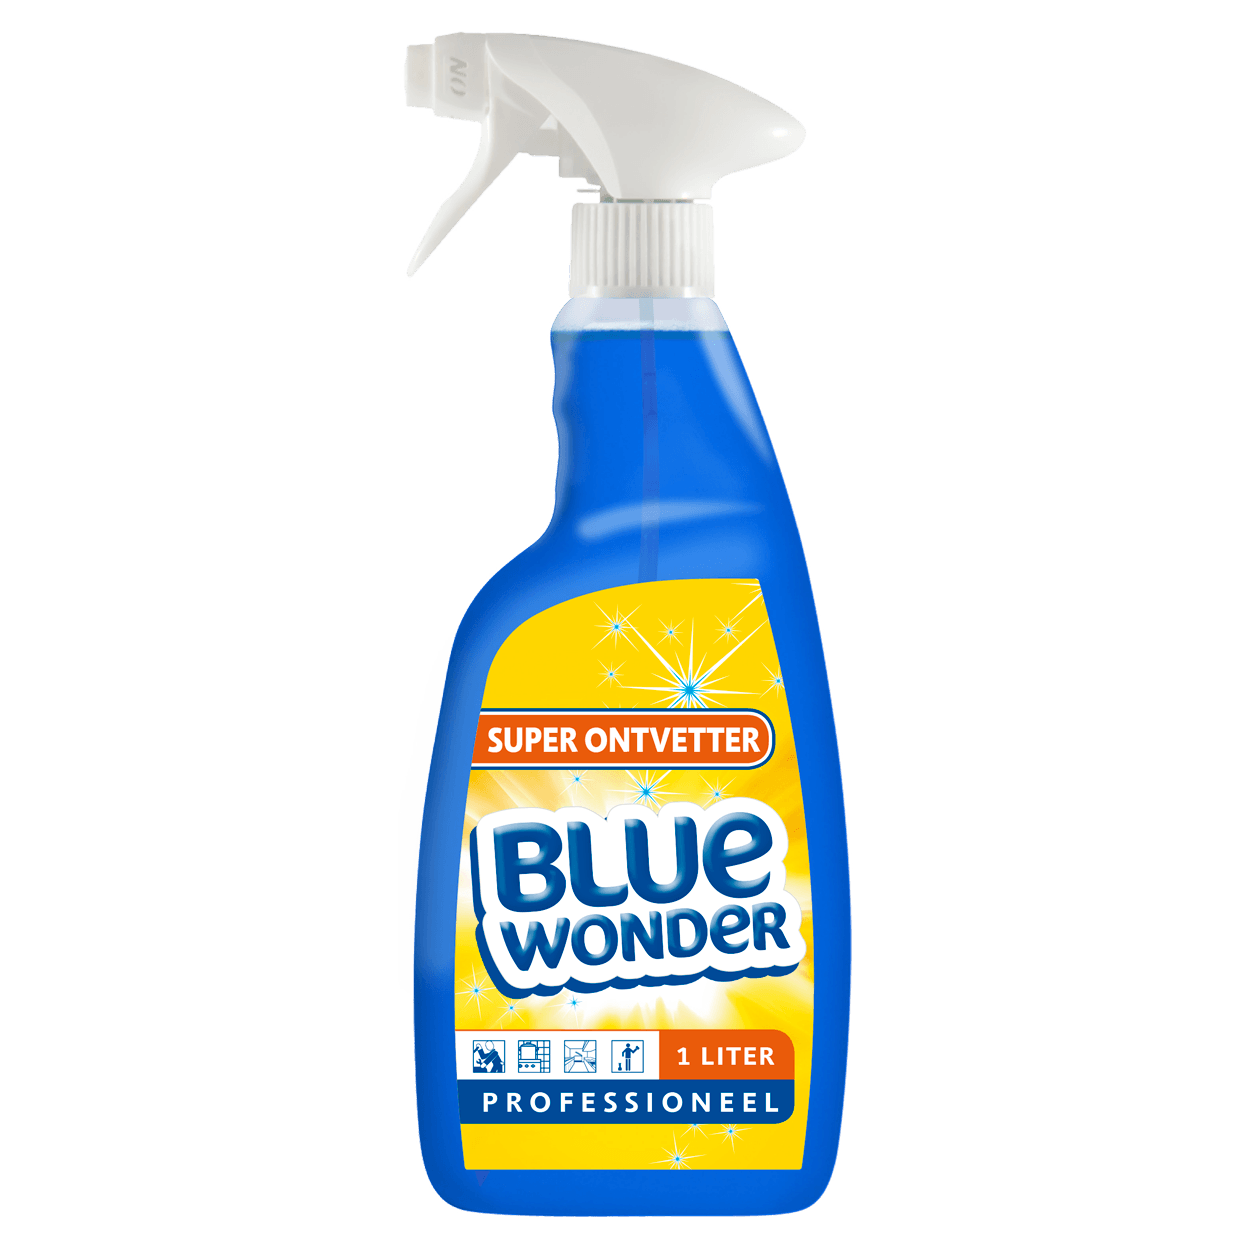 8712038000243_Blue-Wonder_Superontvetter-Professioneel-spray_front